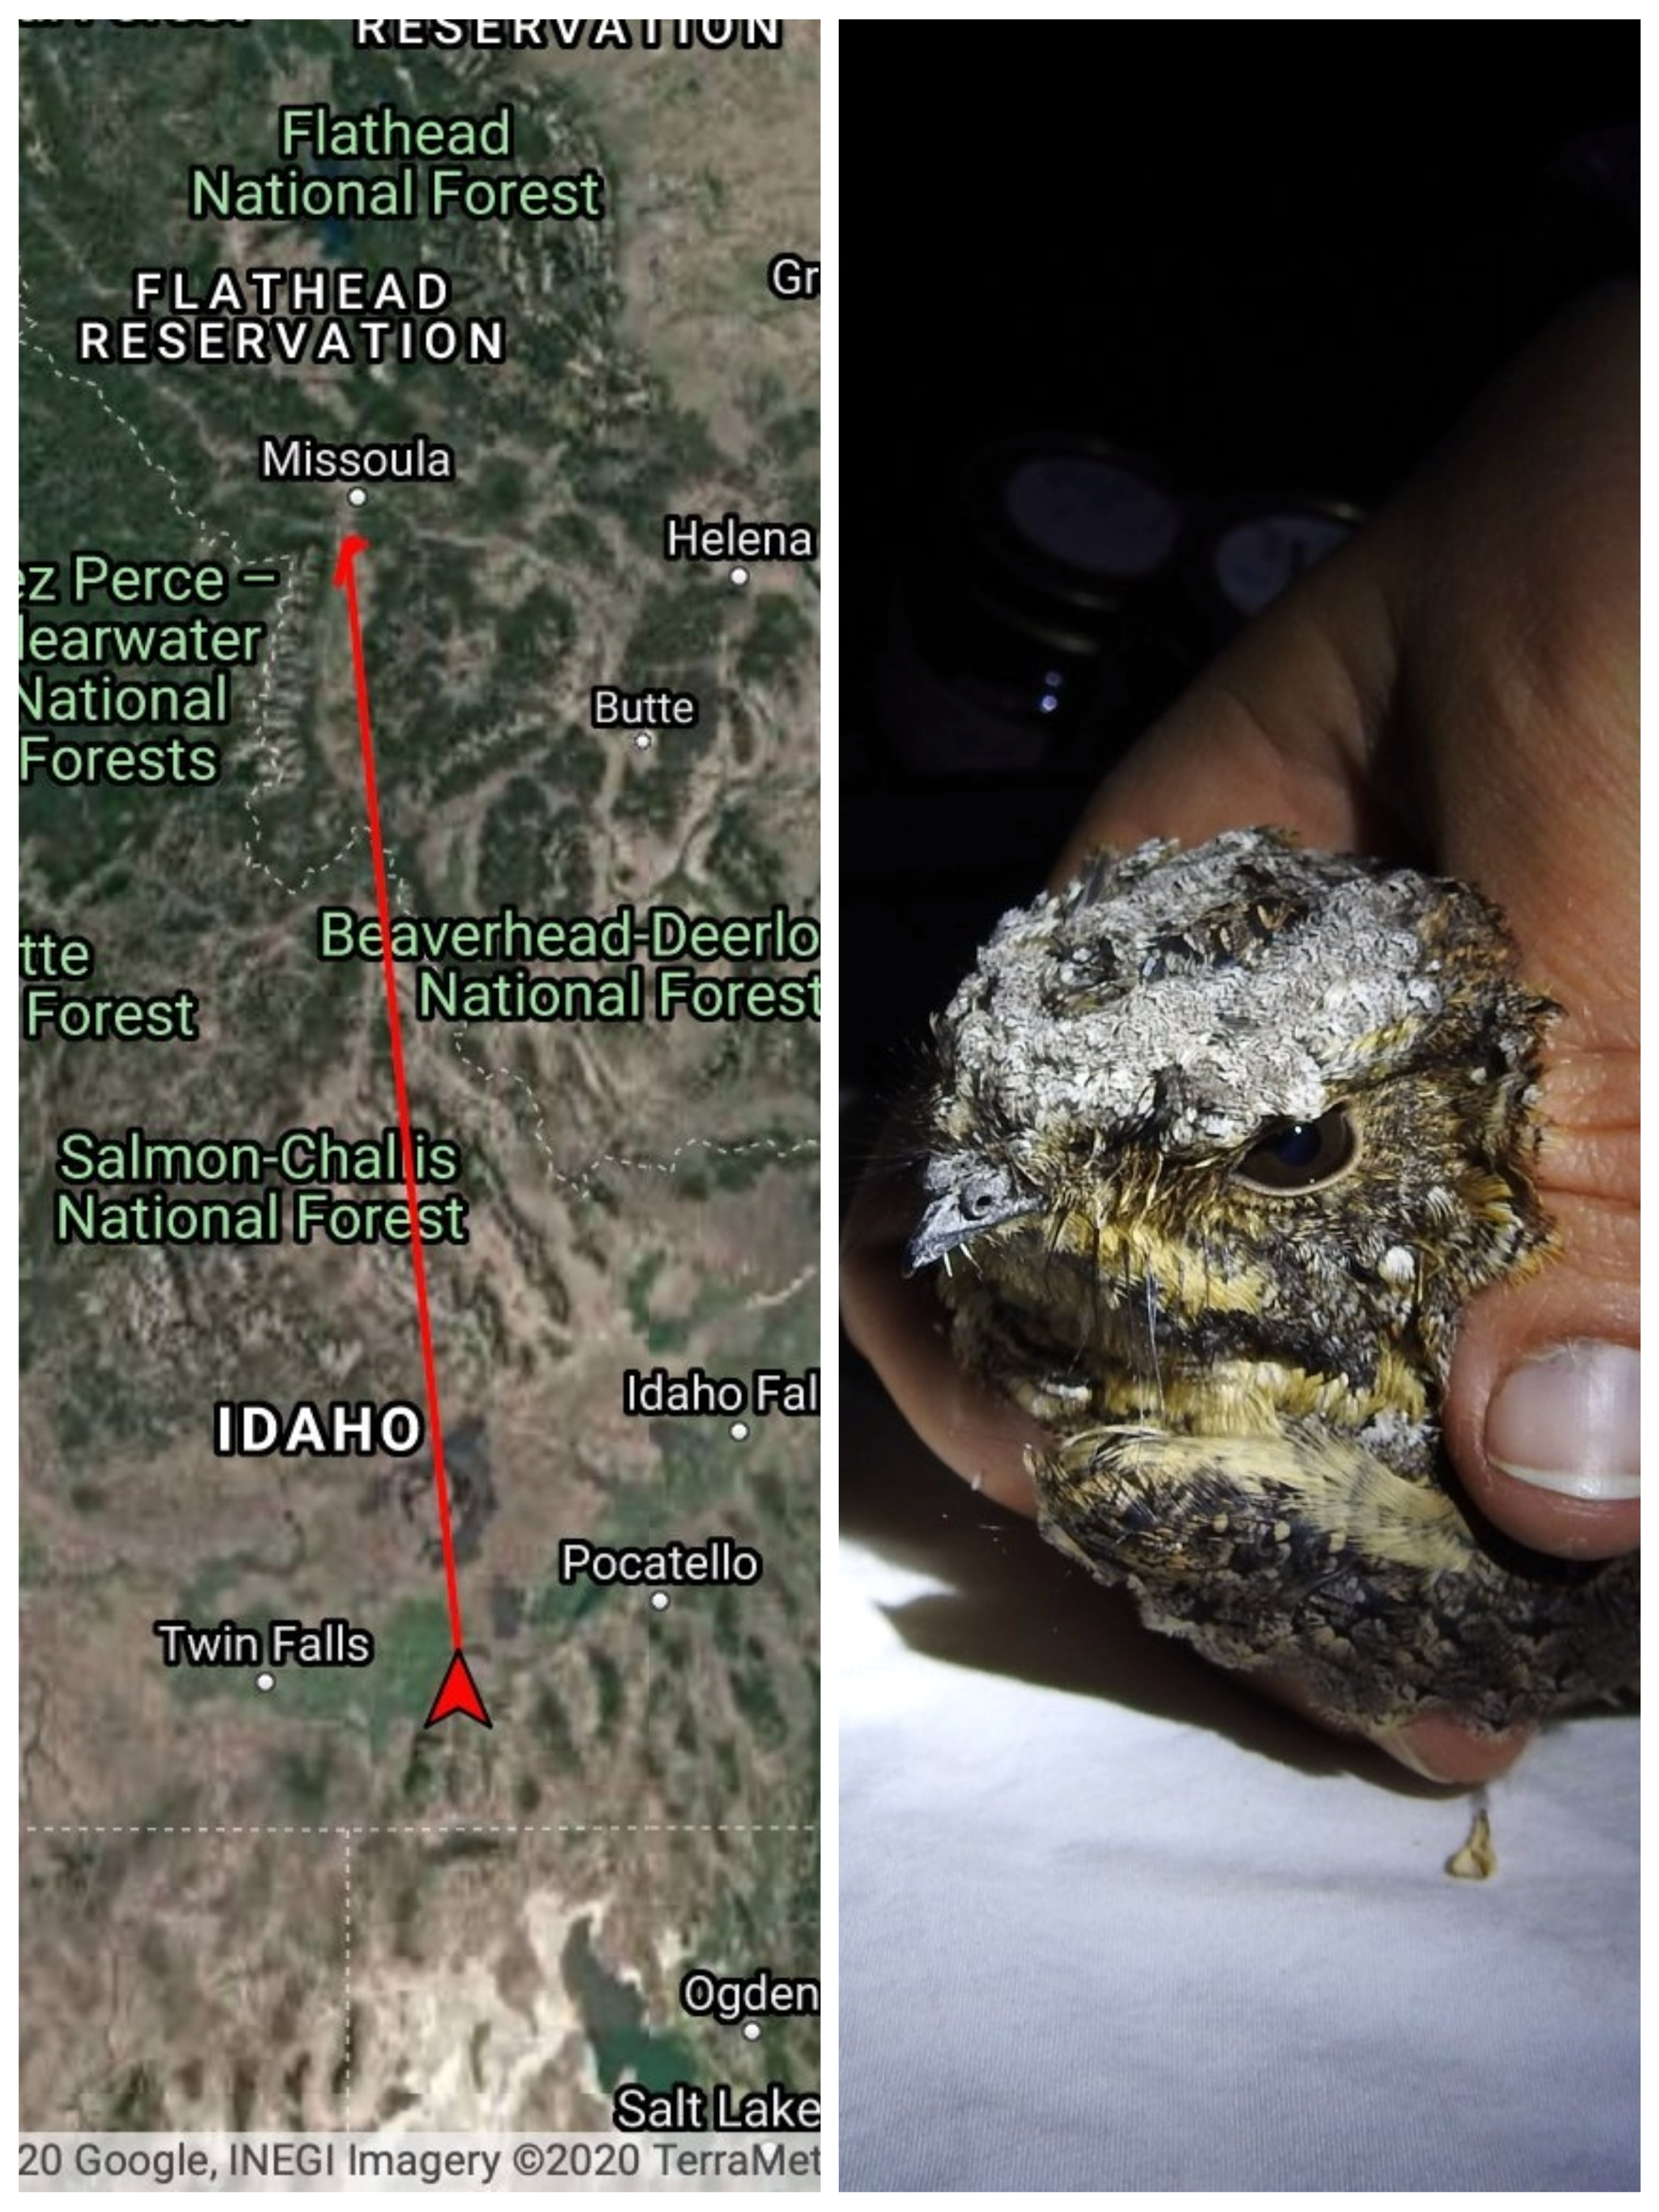 left image displays a map with a pin near Missoula Montana and a track leading to Idaho between Twin Falls and Pocatello. right image shows a biologists hand holding a speckled gray and brown bird in the light of a flashlight